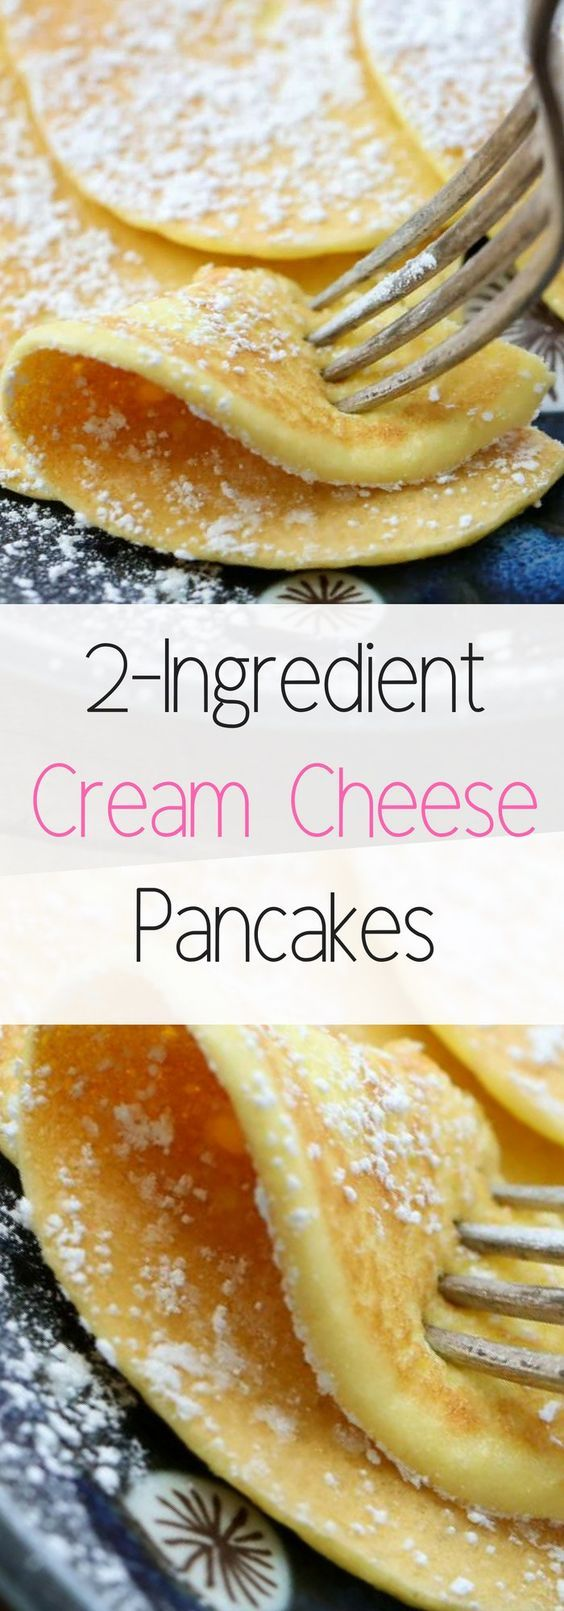 Cream Cheese Pancakes are a low-carb breakfast option that does not disappoint! Just two ingredients are all you need. Ingredients 4 ounces cream cheese 4 eggs Optional: vanilla or cinnamon I rarel… #creamcheeserecipes